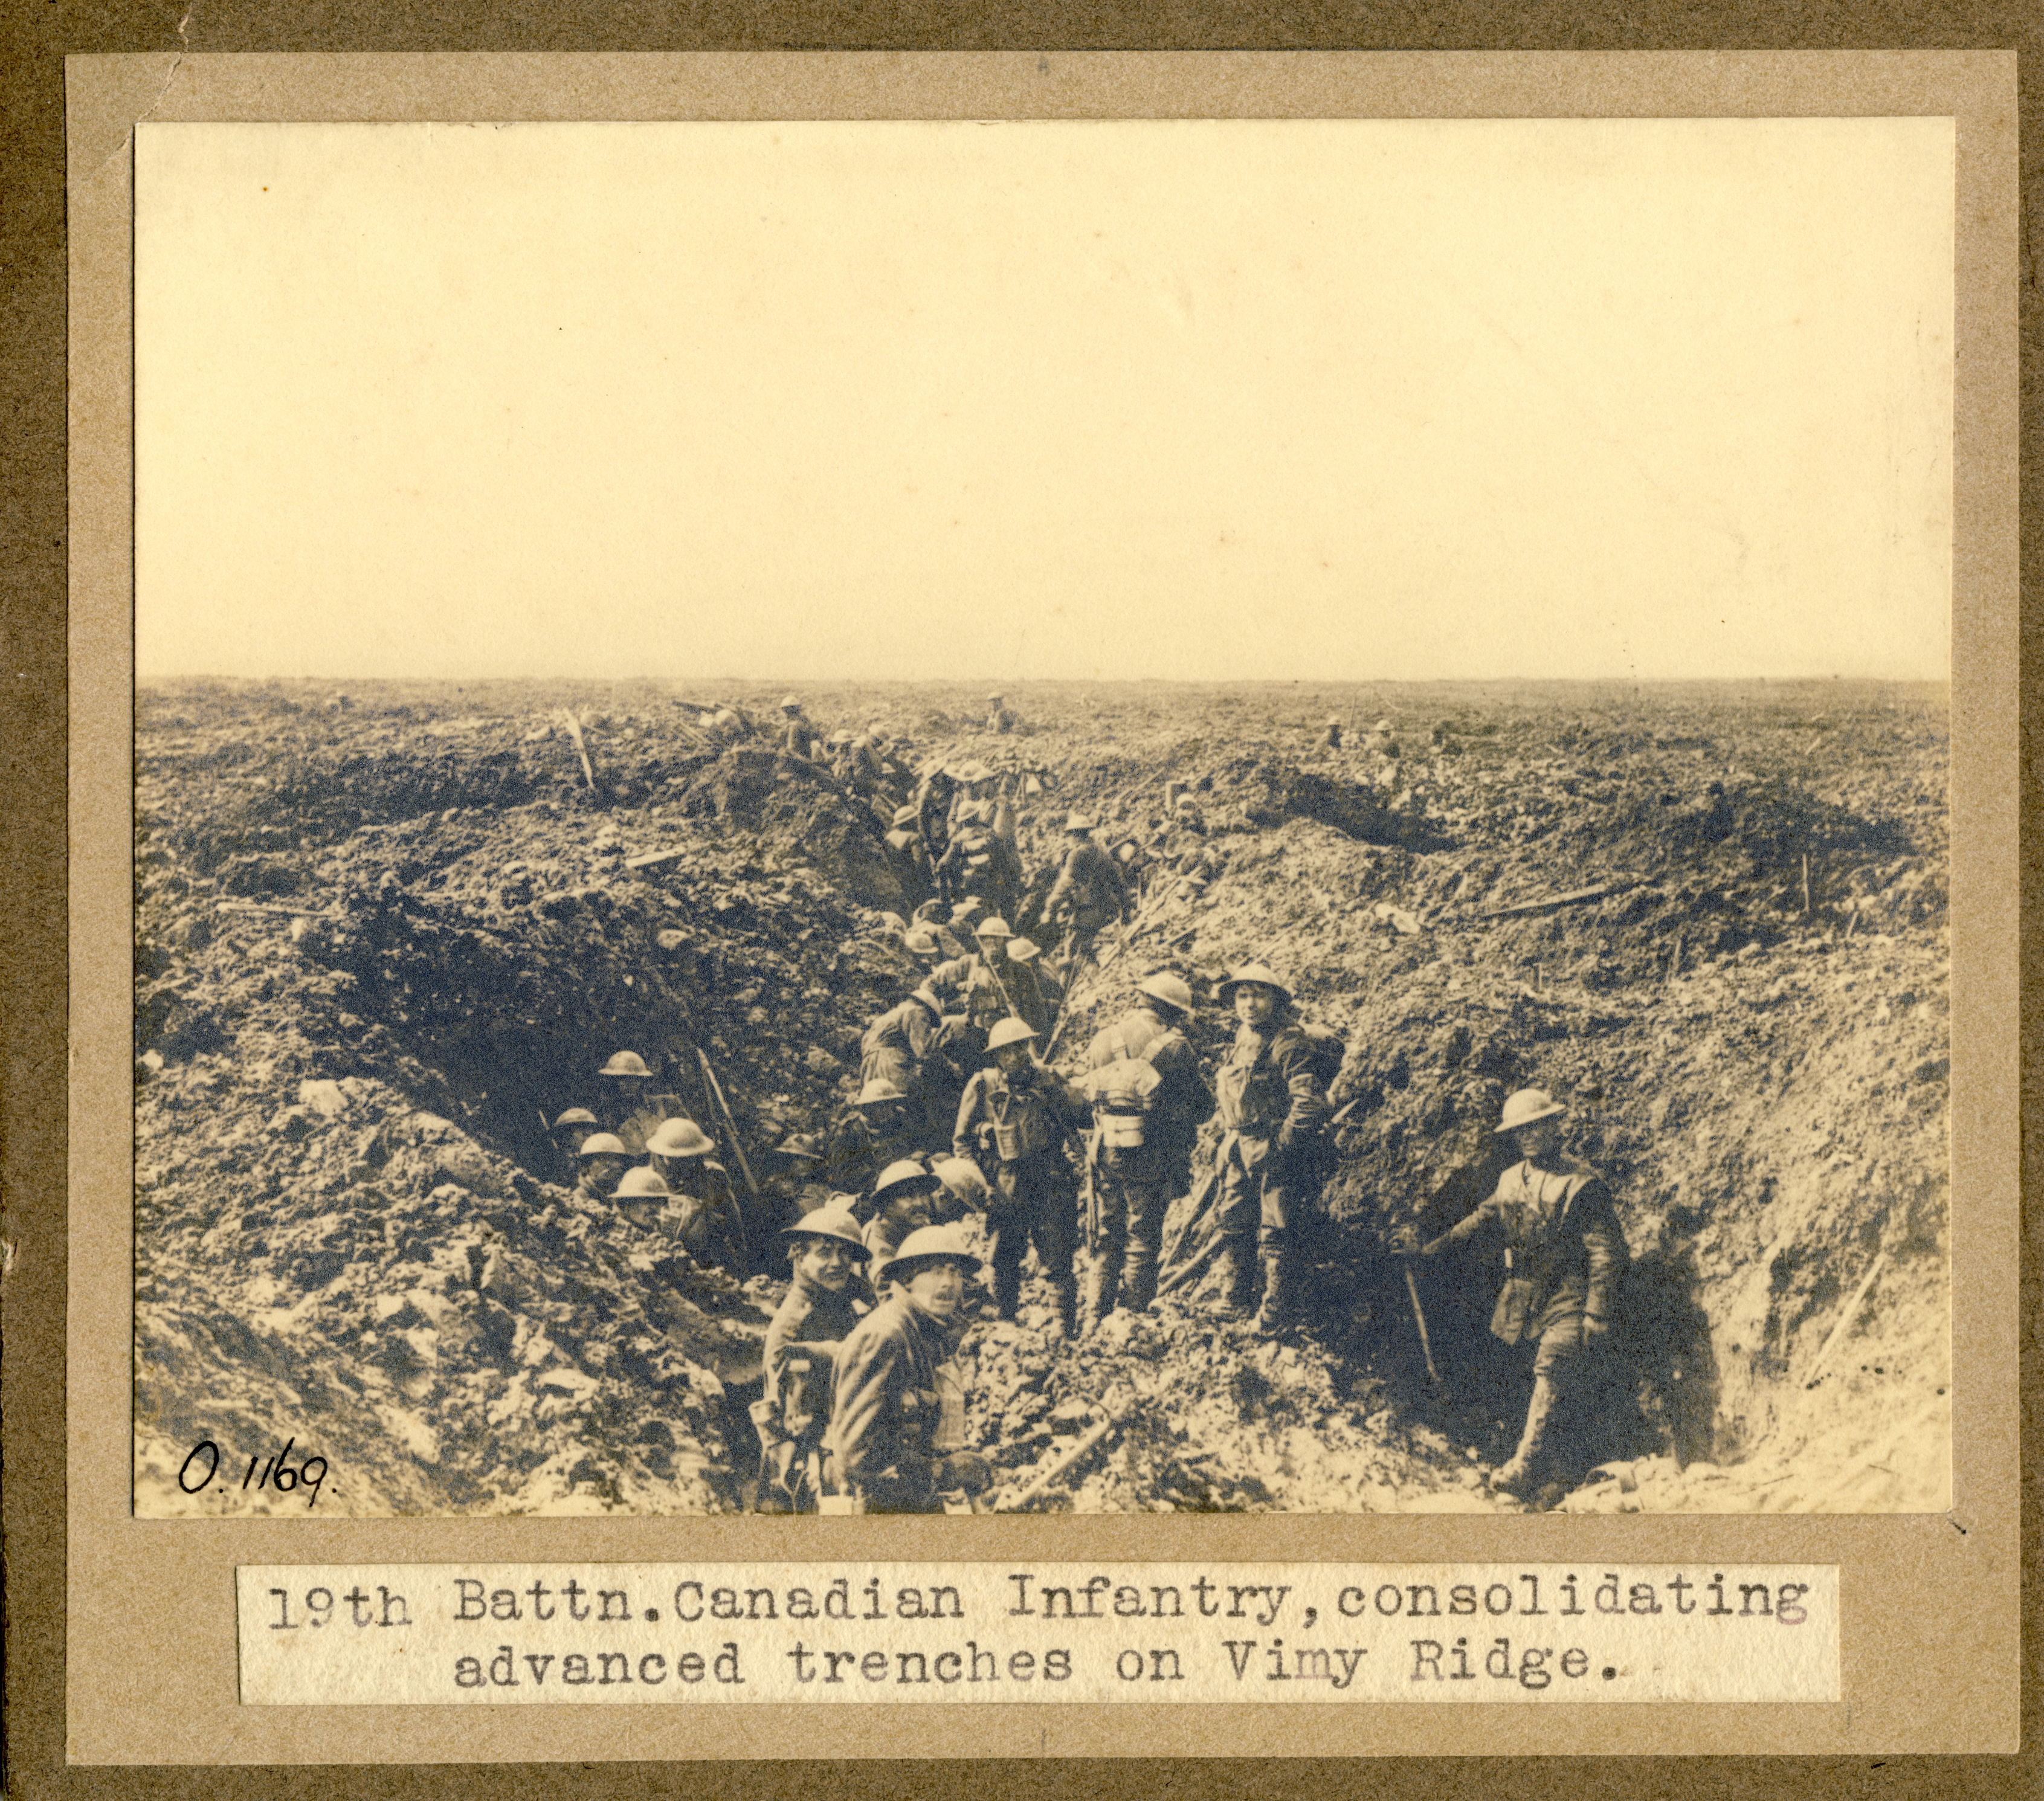 Consolidating advance trenches at Vimy Ridge